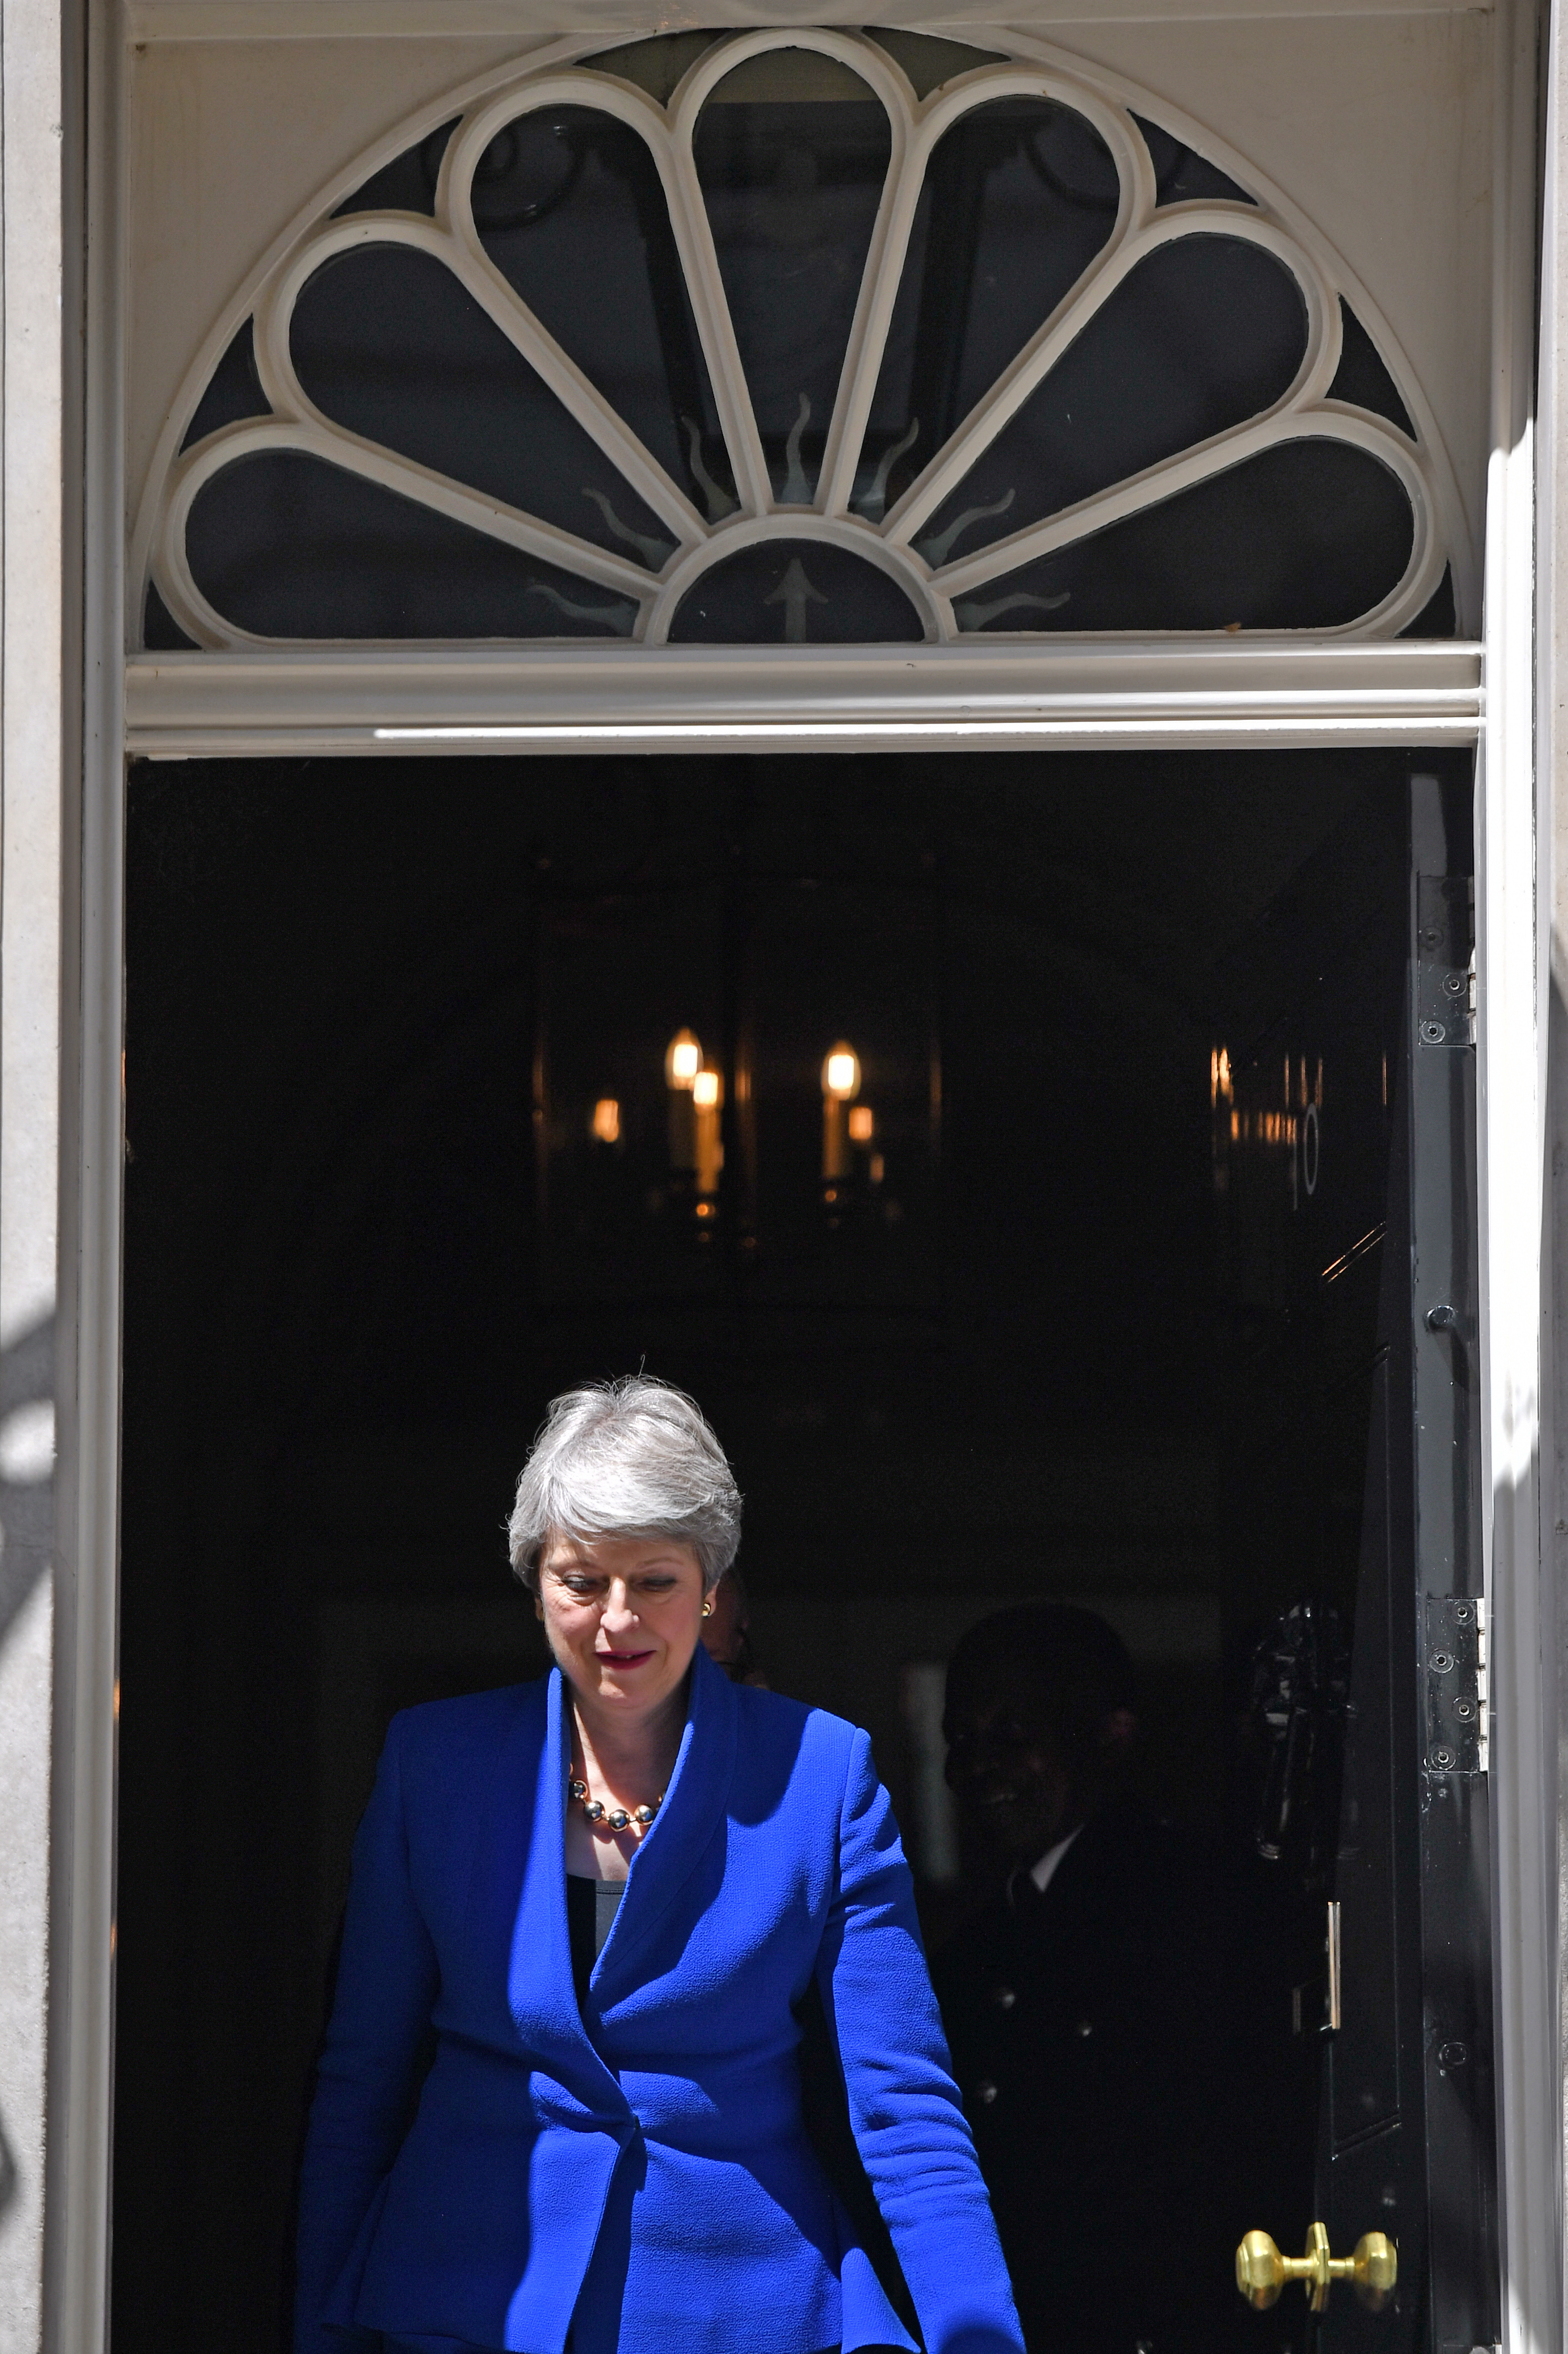 Outgoing Prime Minister Theresa May leaves 10 Downing Street, prior to a meeting at Buckingham Palace where she will hand in her resignation to Queen Elizabeth II.